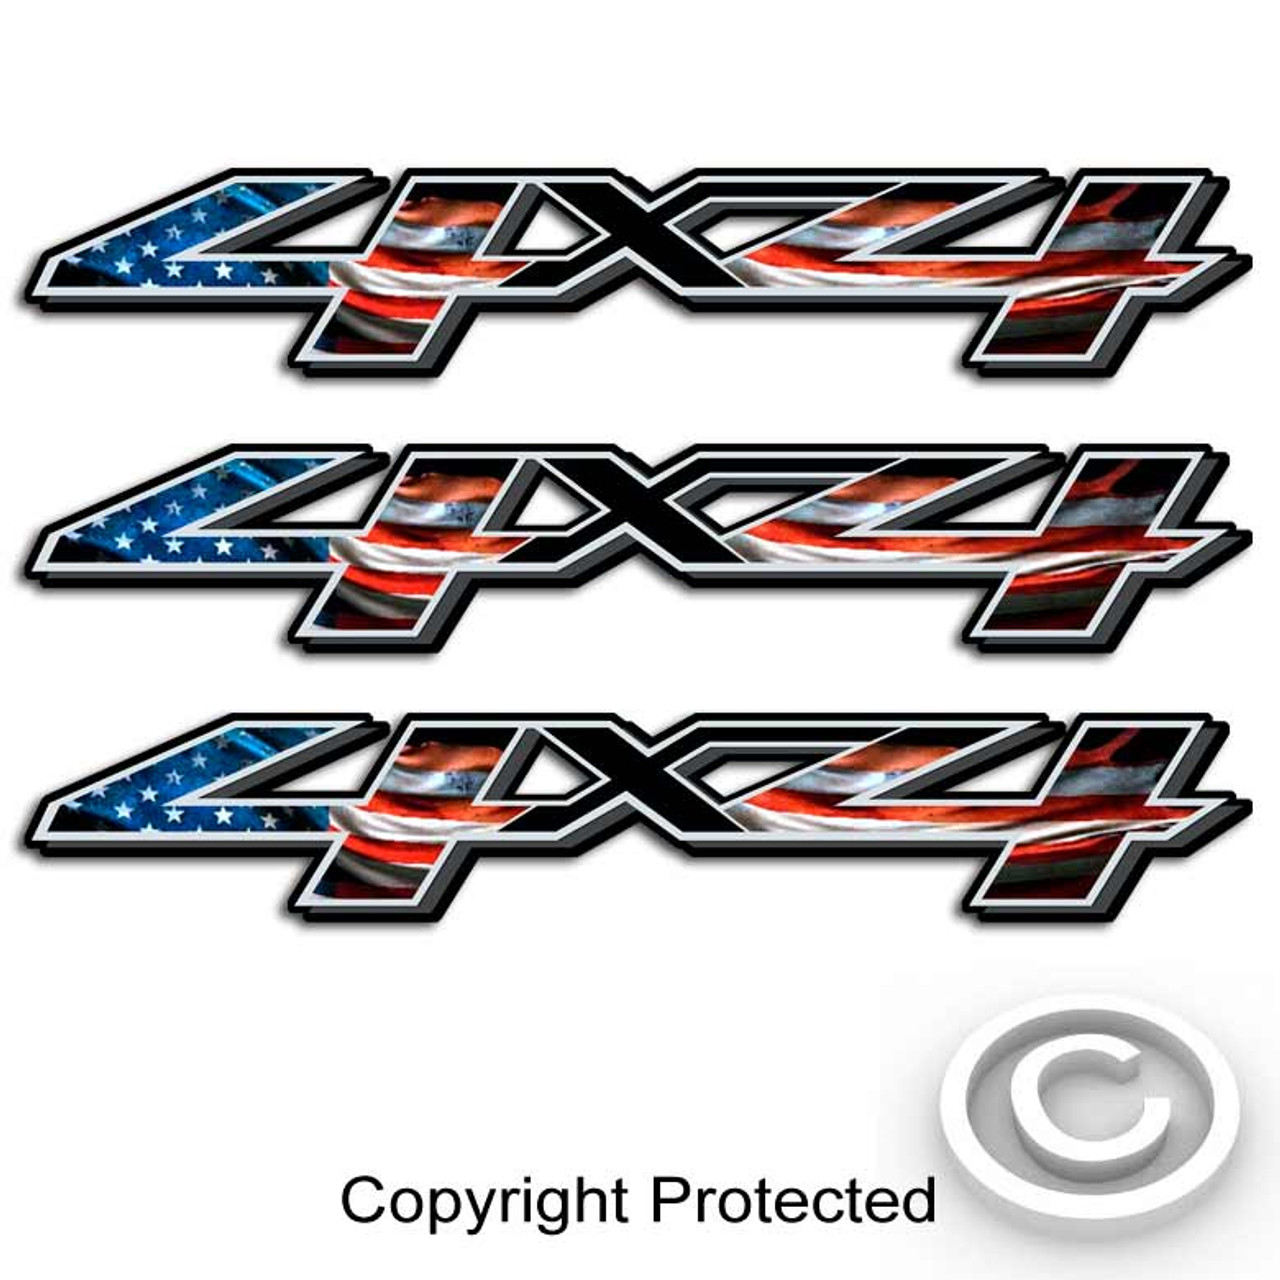 X American Flag Chevy Truck Decals - 4x4 truck decals